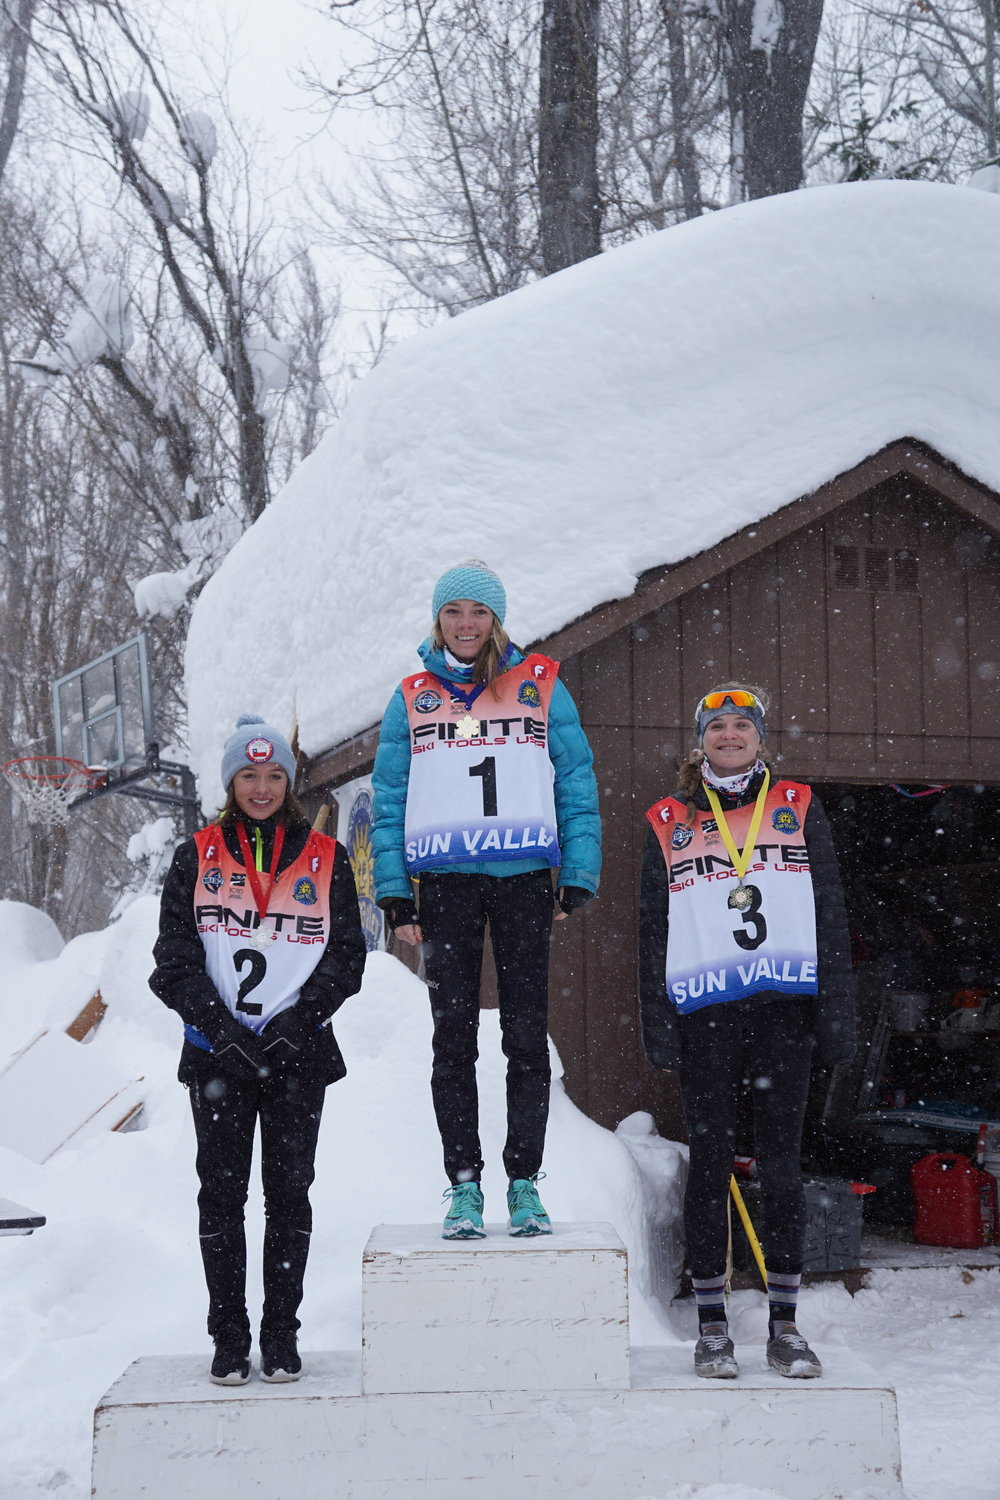 FU18 Sun Valley Podium